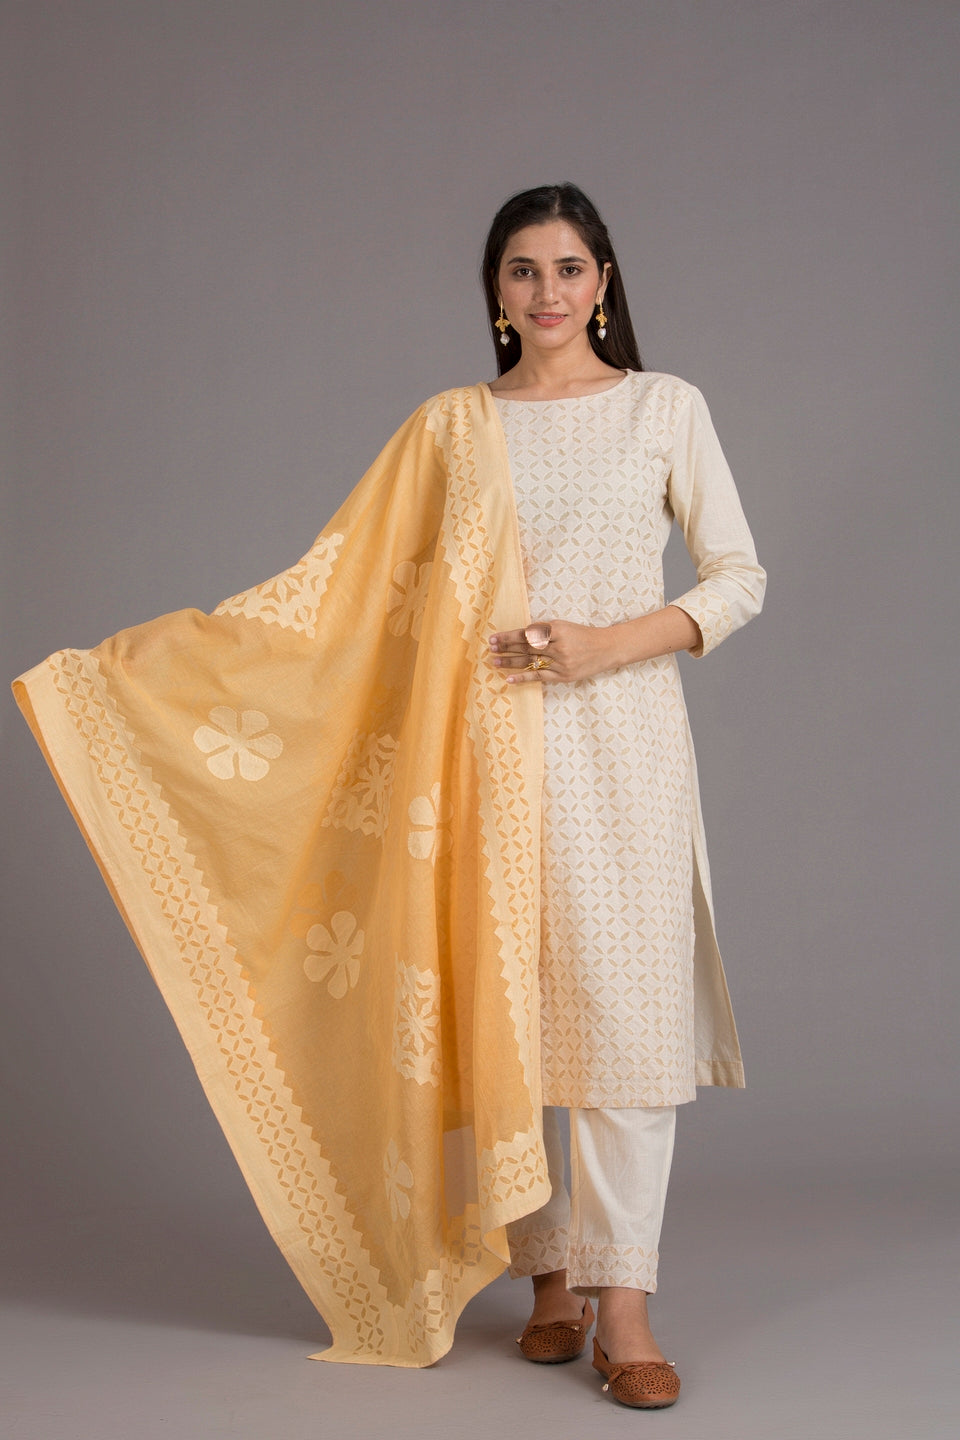 Floral-Diamond Applique Cotton Dupatta with Khuddi Design Border, Beige